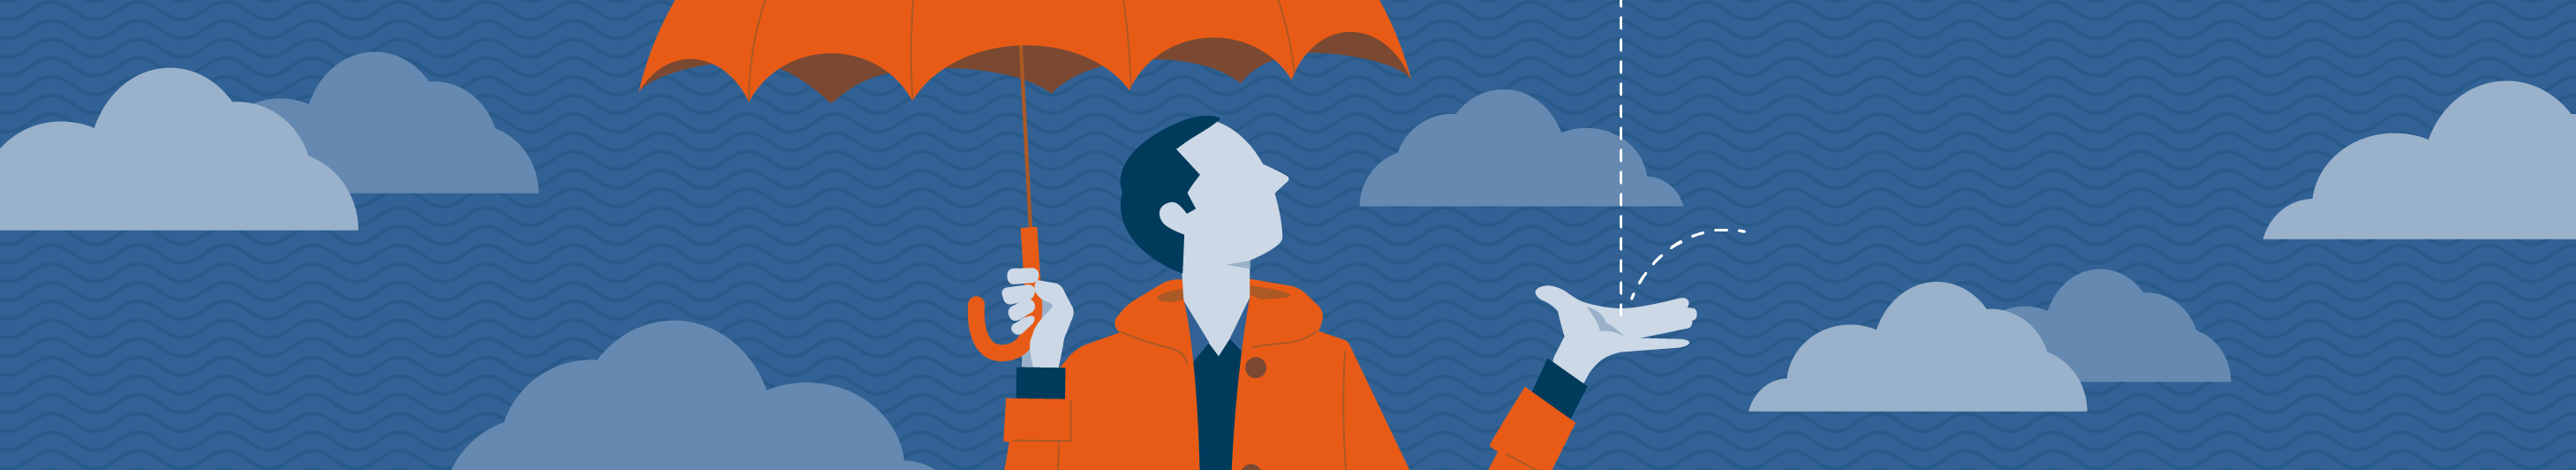 illustration of man in orange jacket holding an orange umbrella with cloud background